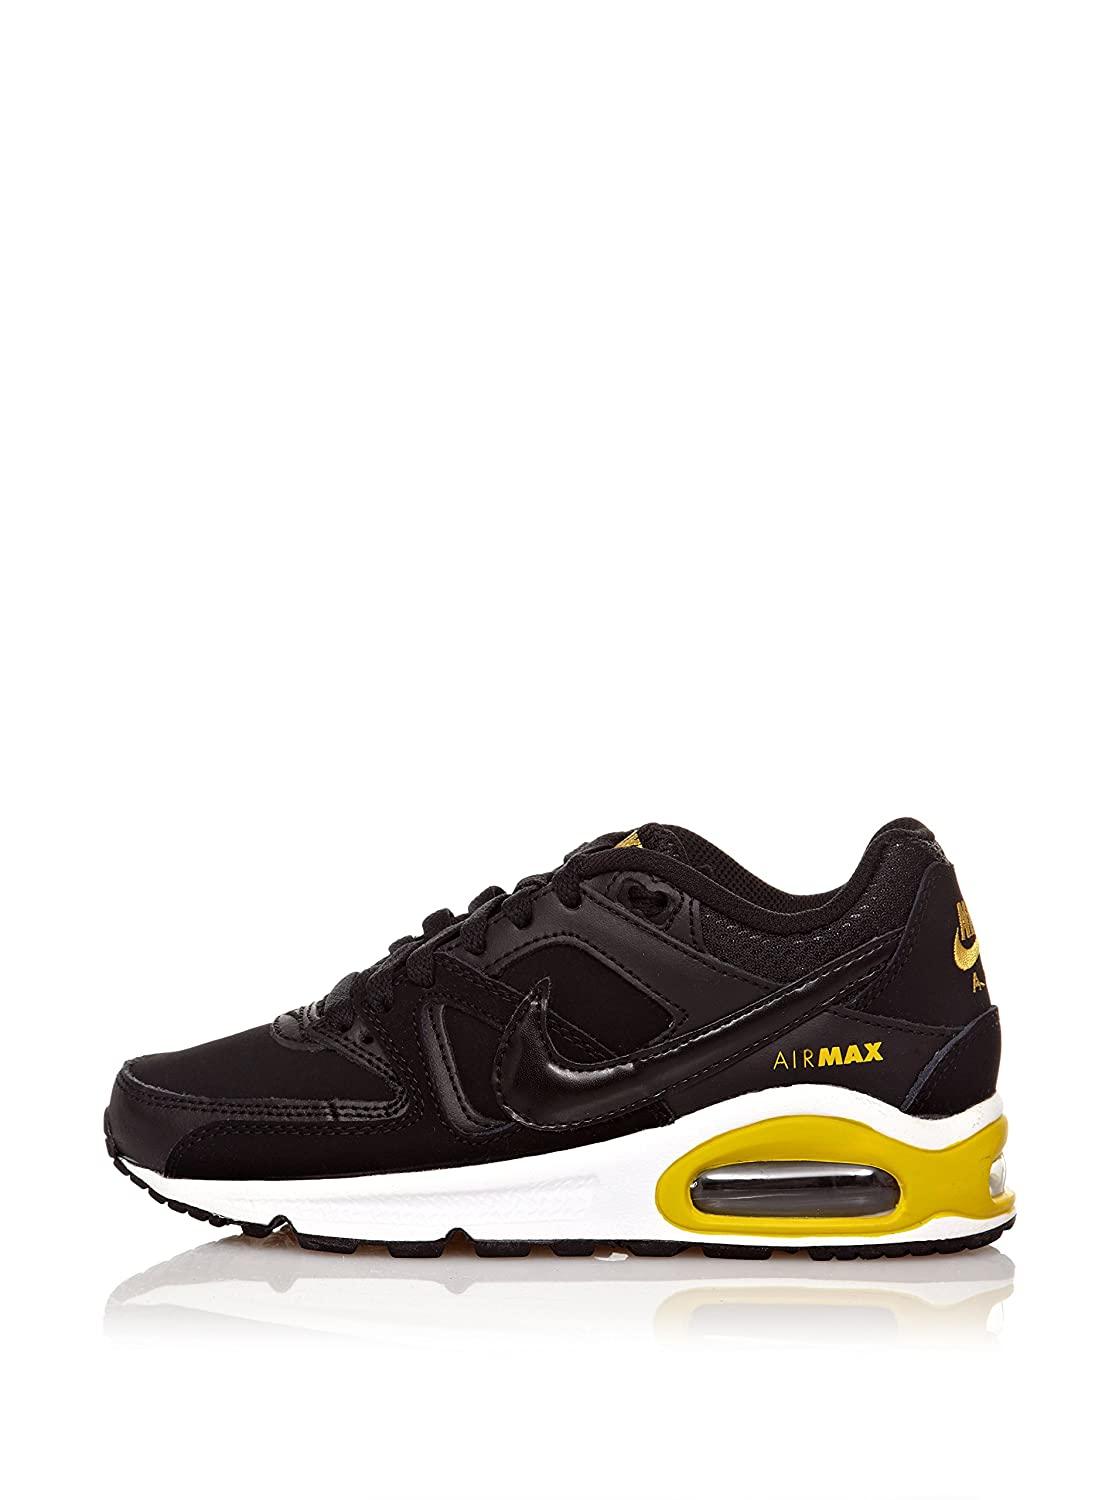 Nike Air Max Command (Gs), Herren Sneakers  EU 39.5 (US 7)|schwarz/gelb